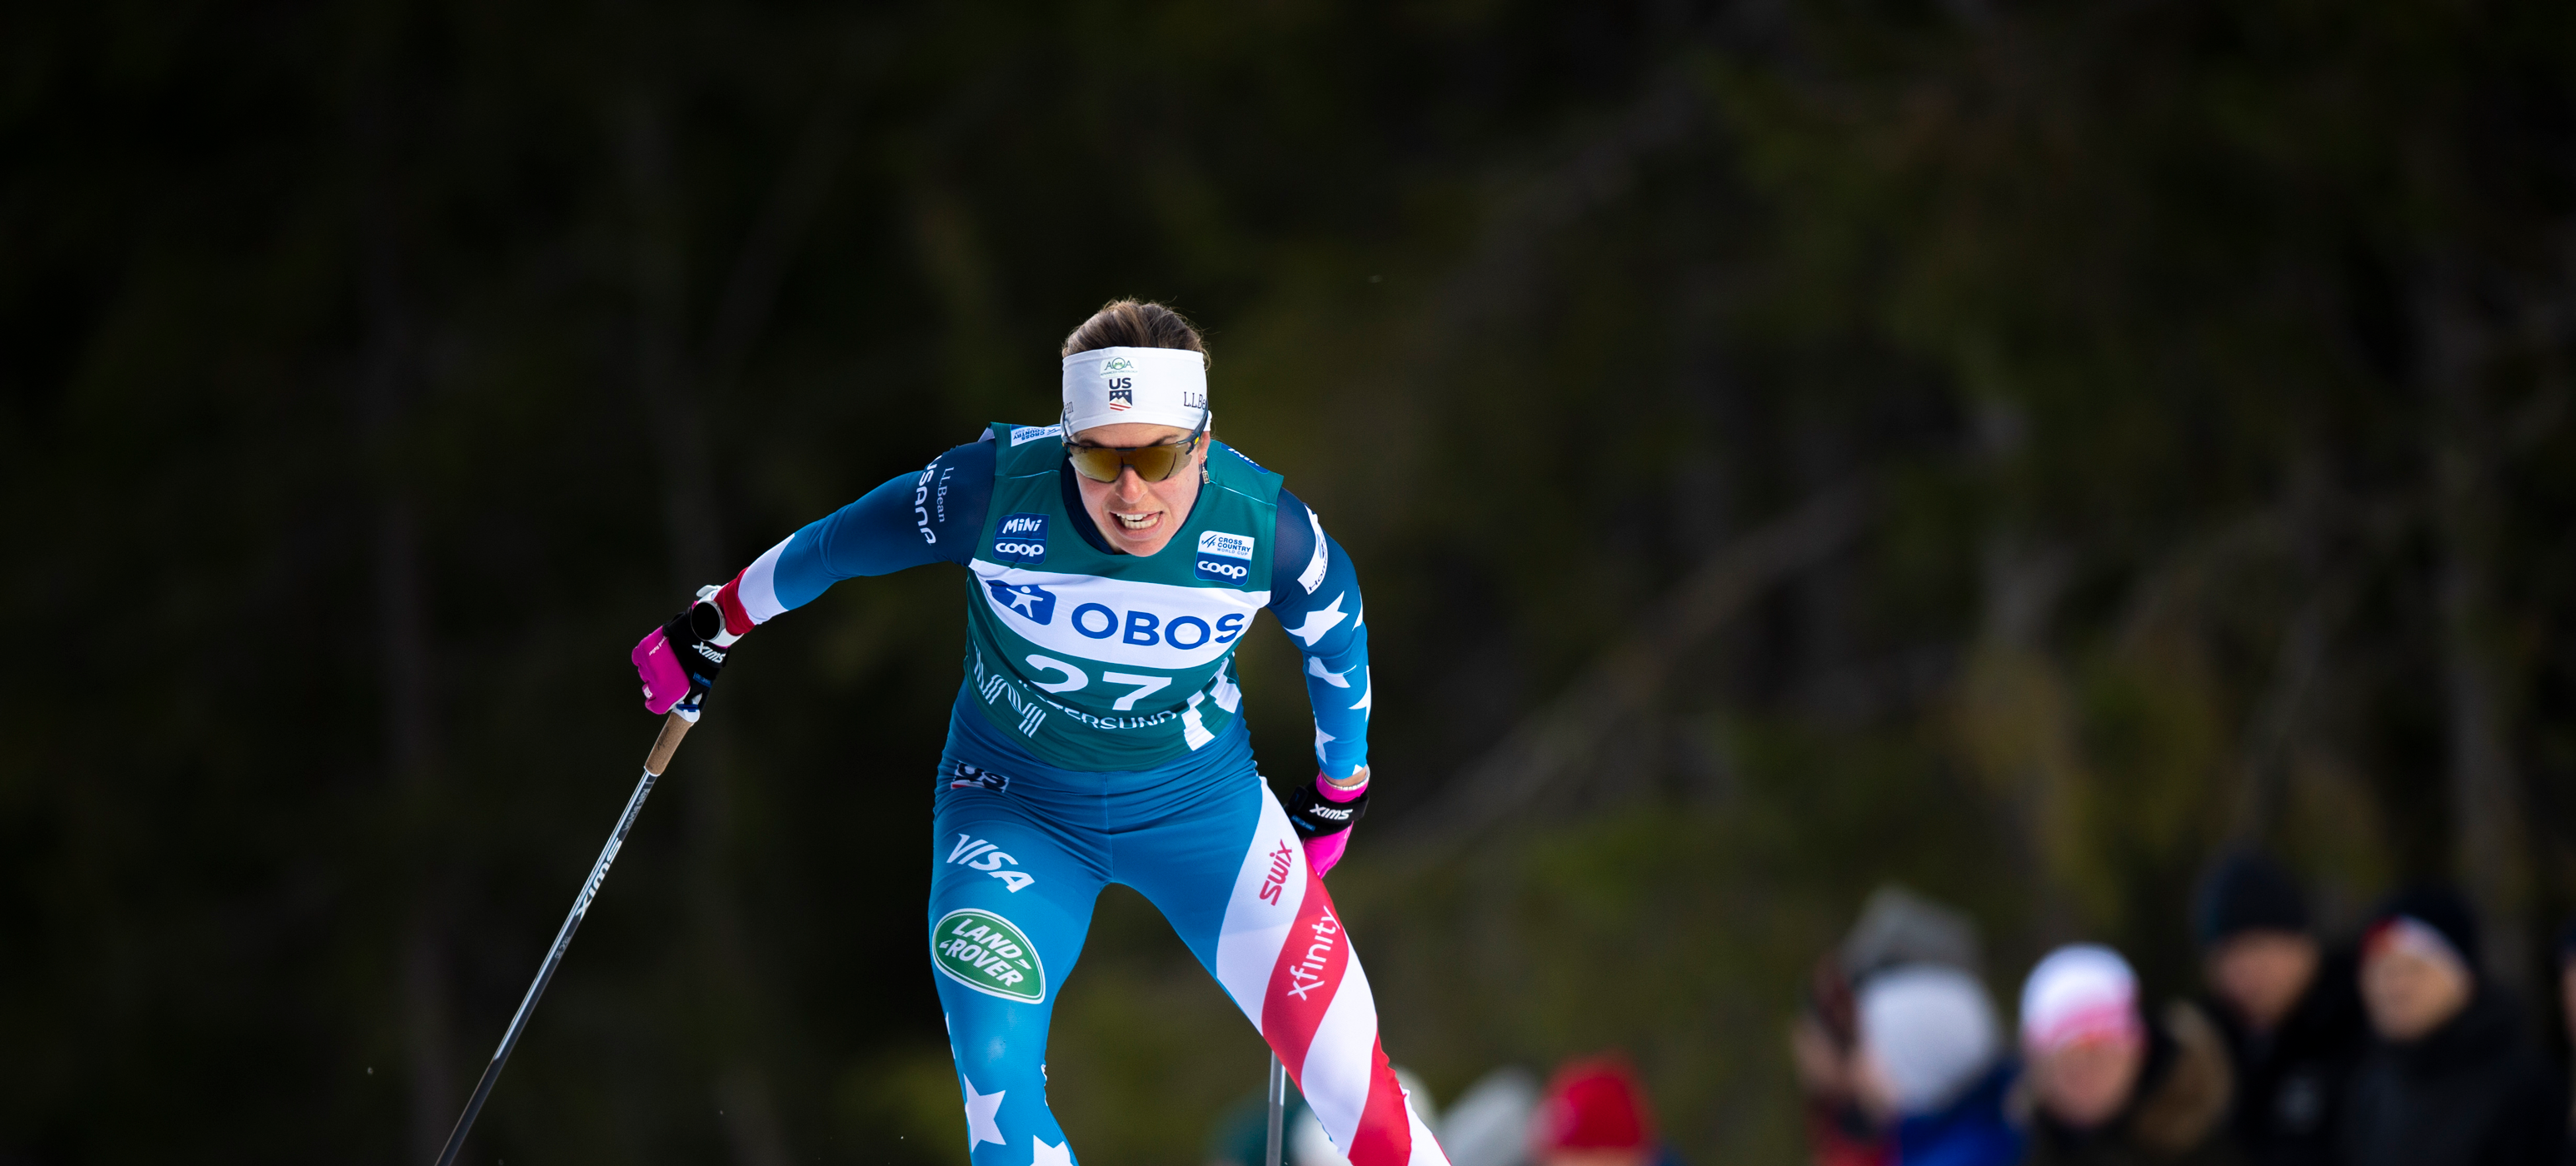 Rosie Brennan opened the nine-day Ski Tour 2020 with a ninth-place finish Saturday. (www.nordicfocus.com. © Vianney THIBAUT/NordicFocus)